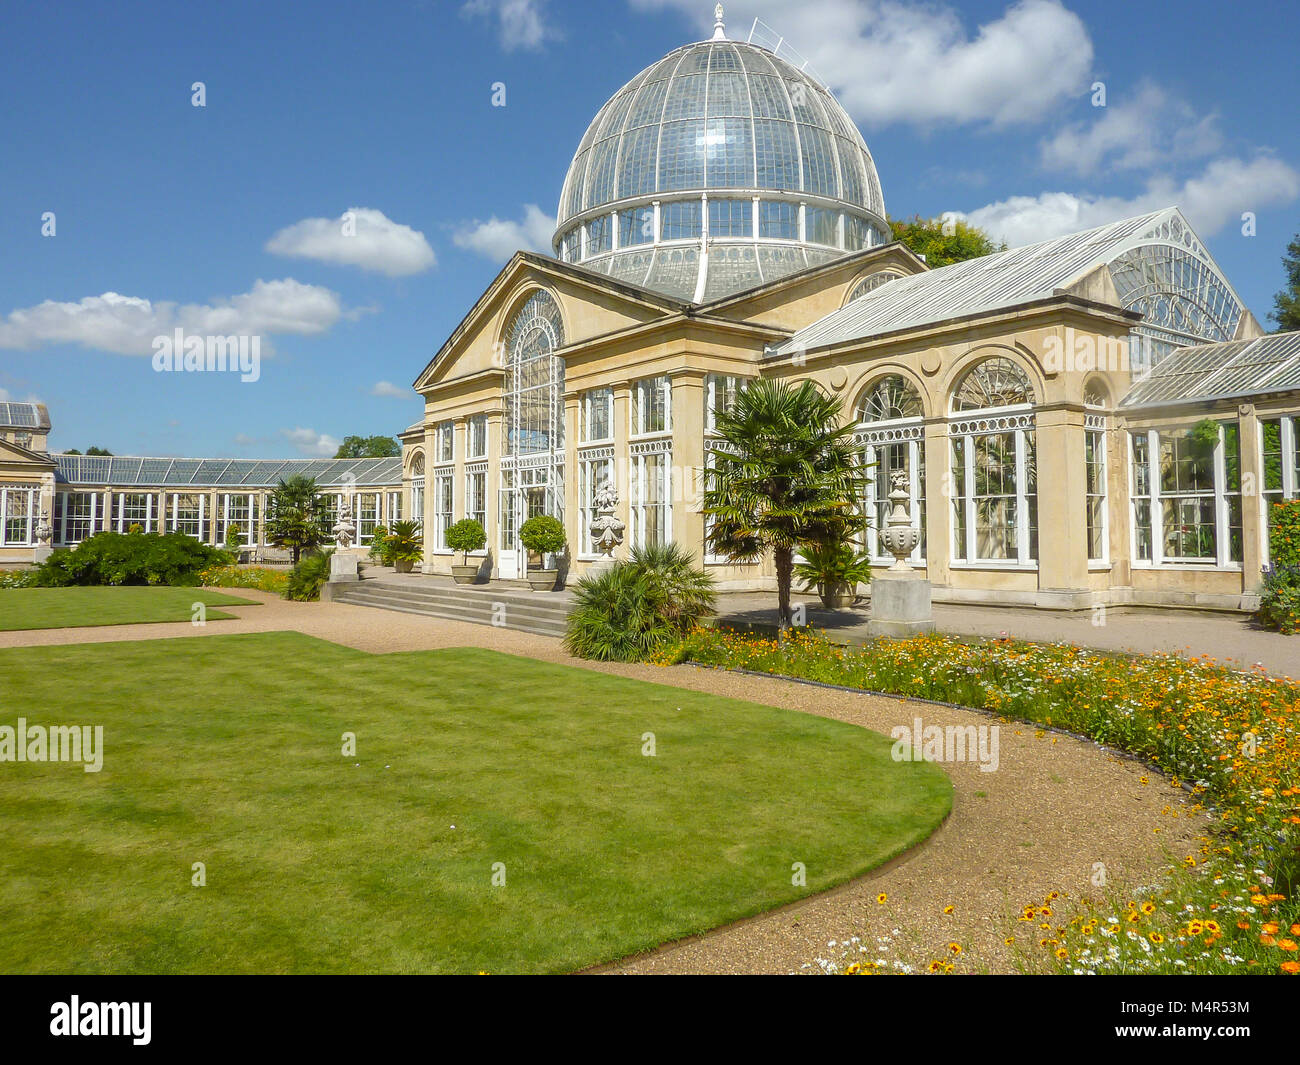 The great Conservatory in the grounds of Syon Park , London, England - Stock Image